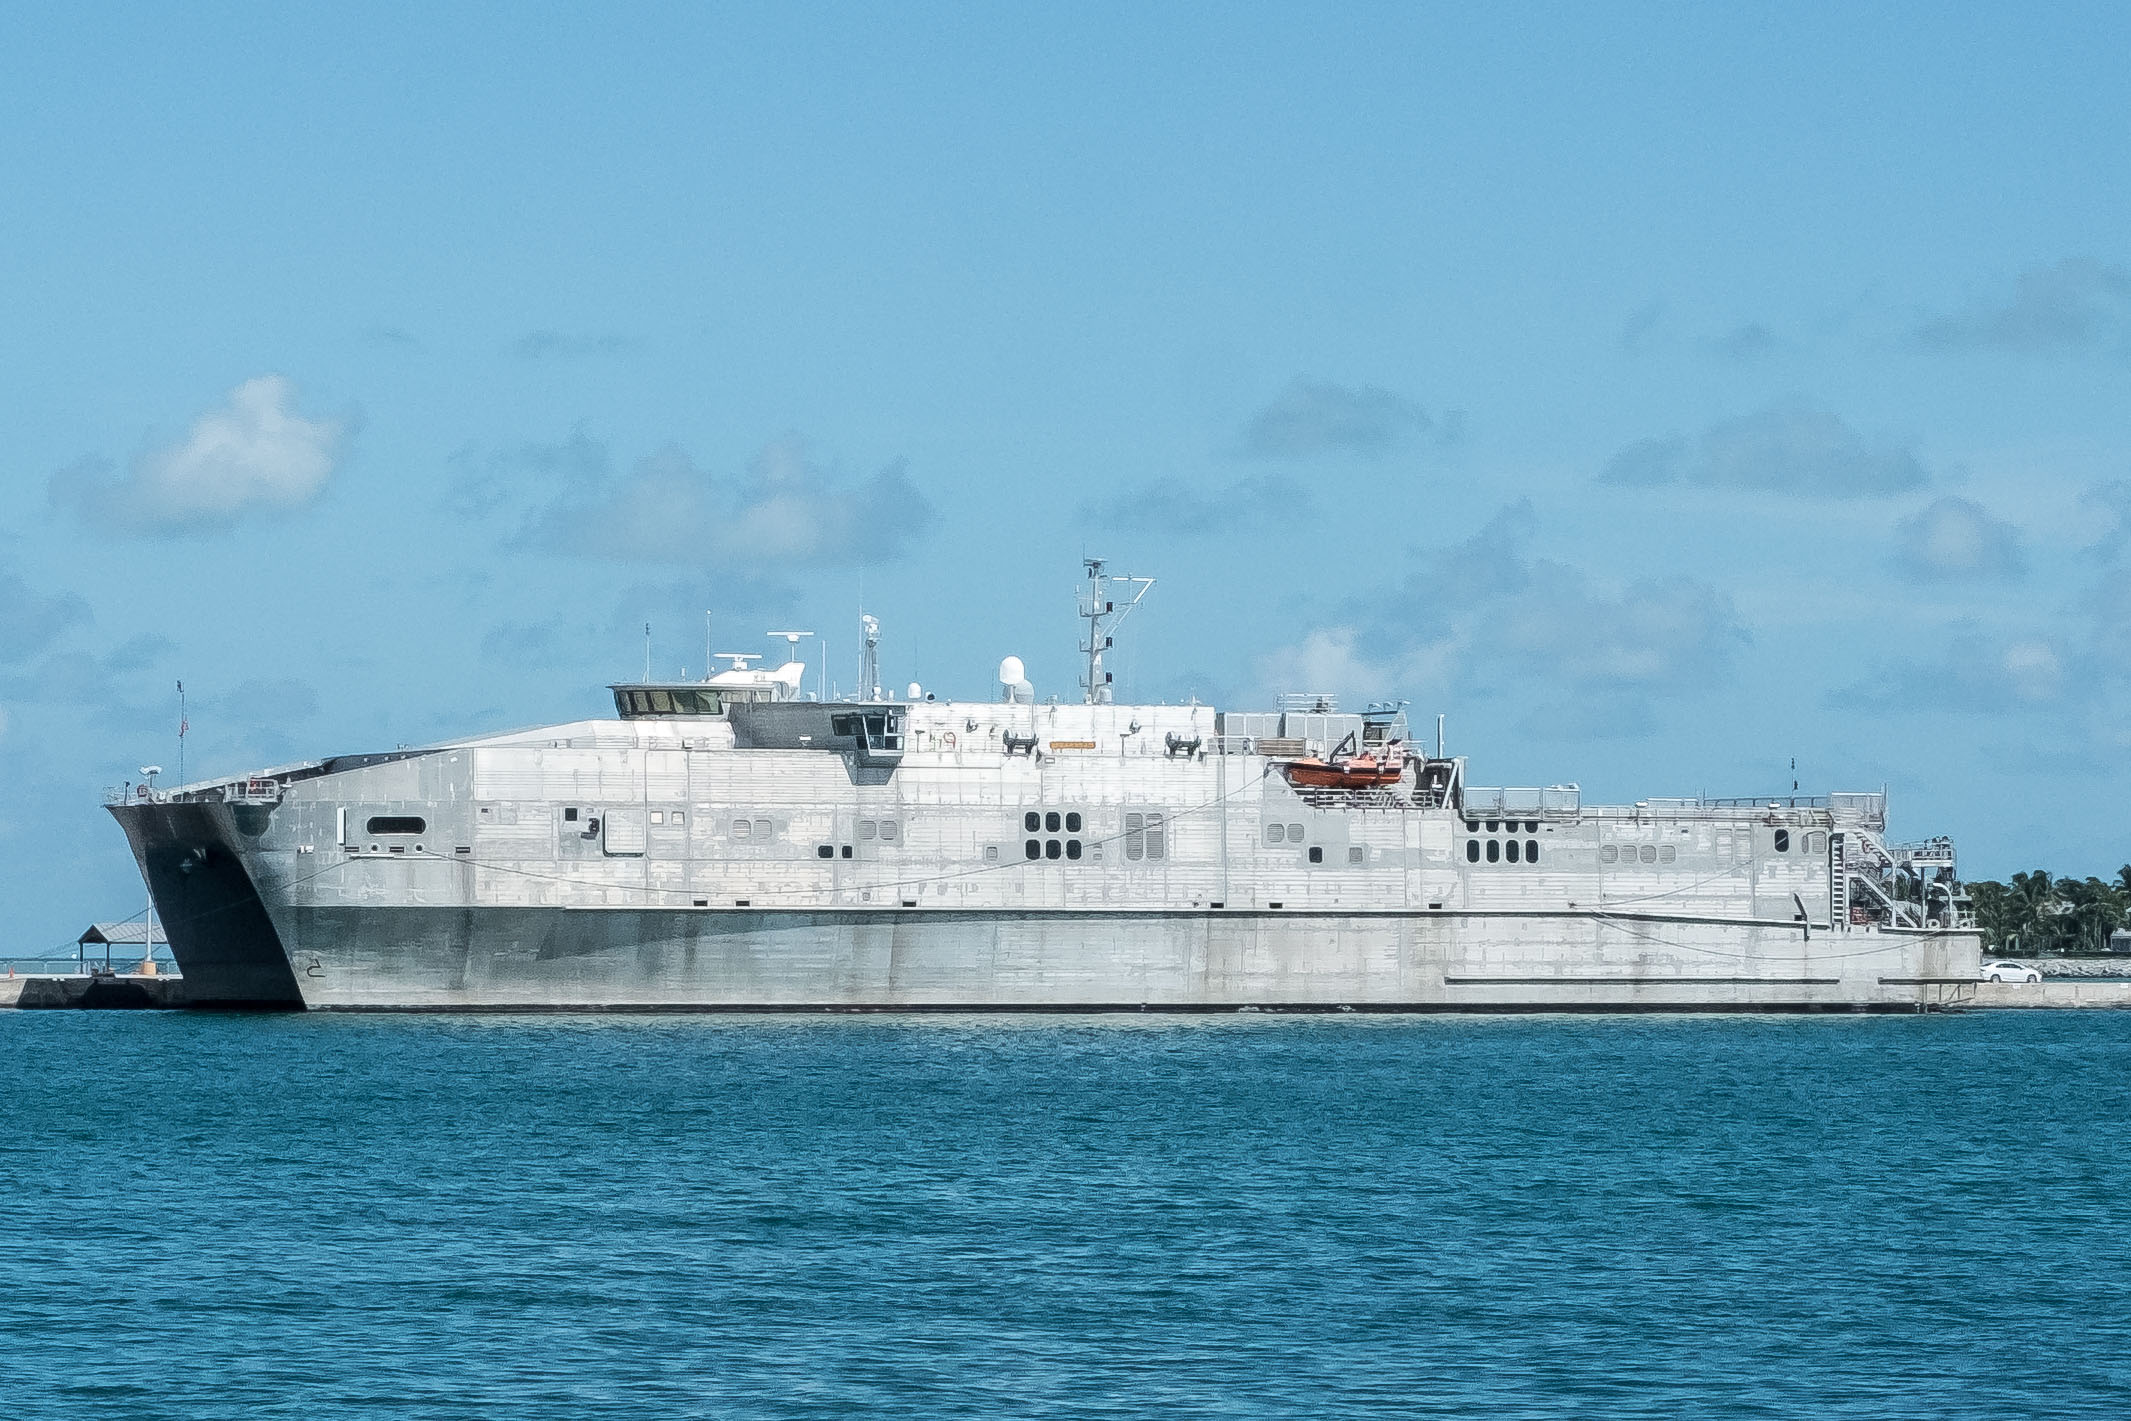 The USNS Spearhead docked at the Outer Mole in Key West.